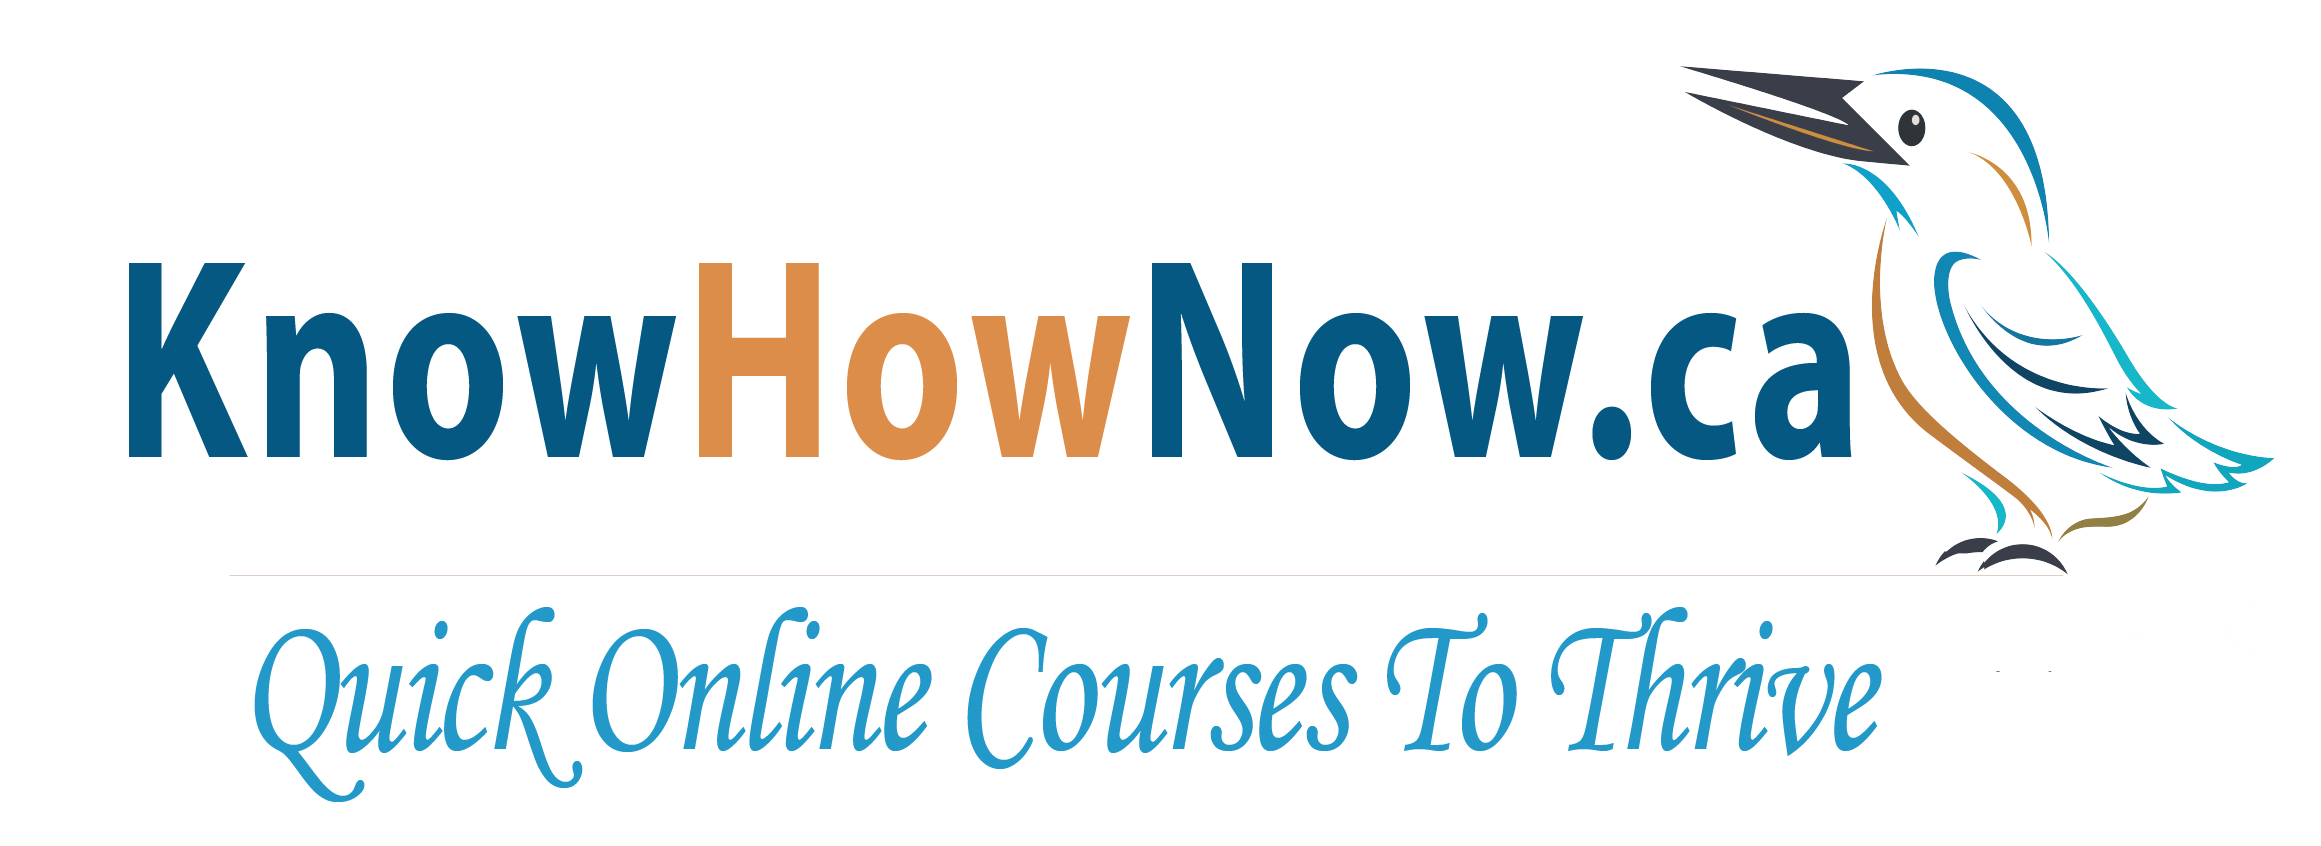 Know How Now logo in blue and orange featuring a similar coloured kingfisher image facing in toward the name. Below a small grey horizontal line is the learning centre's value to students: quick online courses to thrive